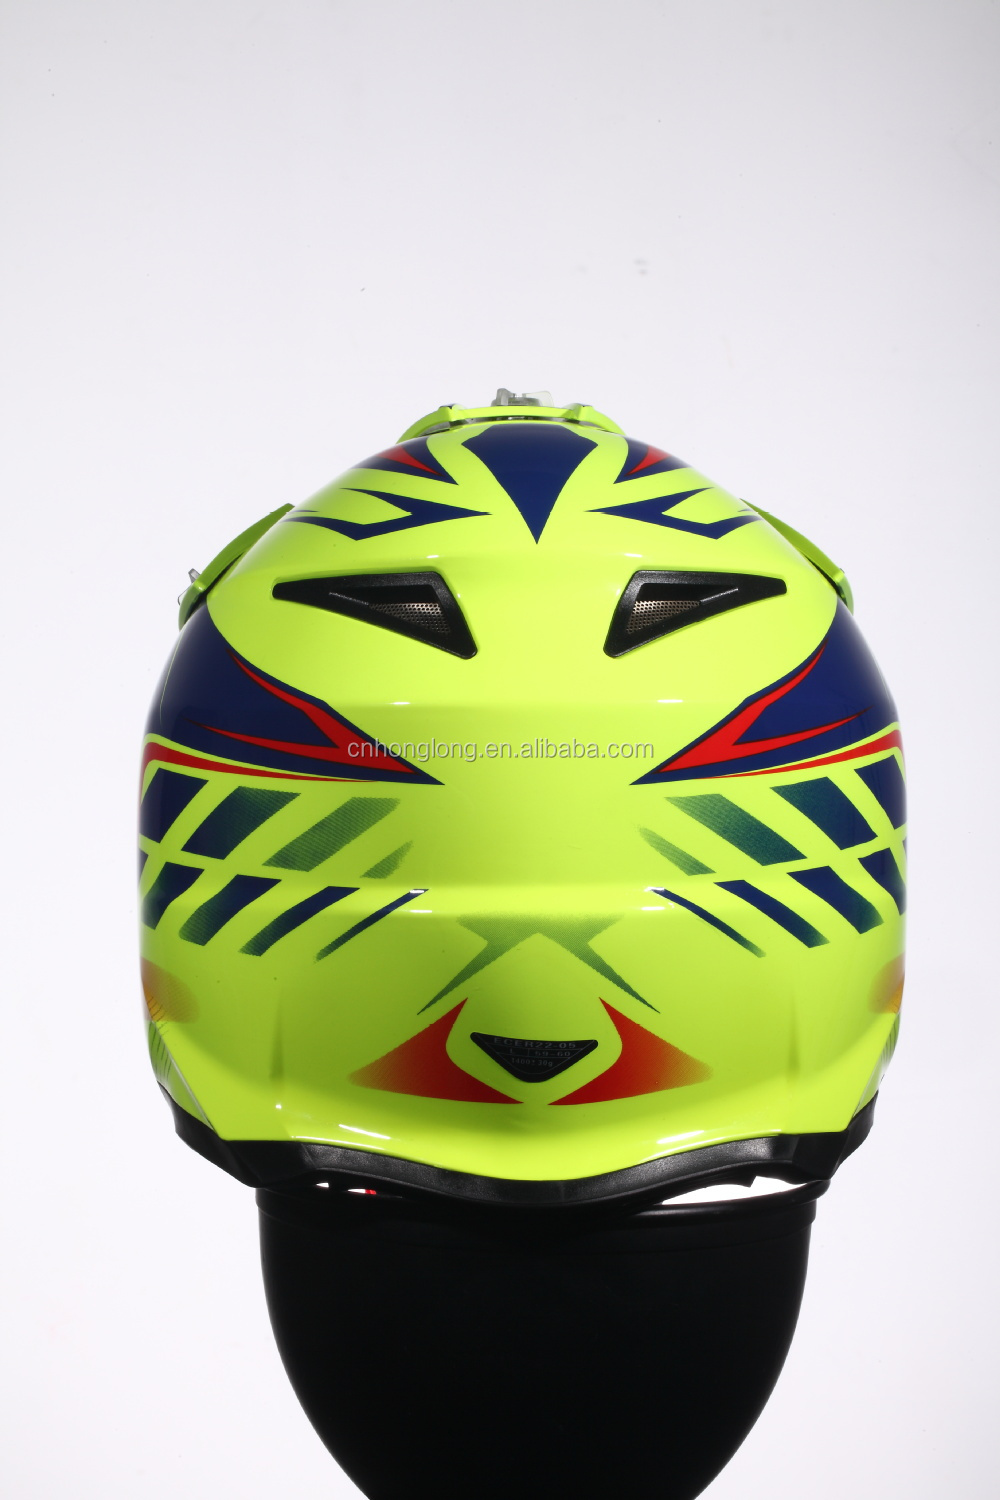 Safety Protection Off-Road helmet with good quality,ECE Certification Motocross helmet with Top selling,